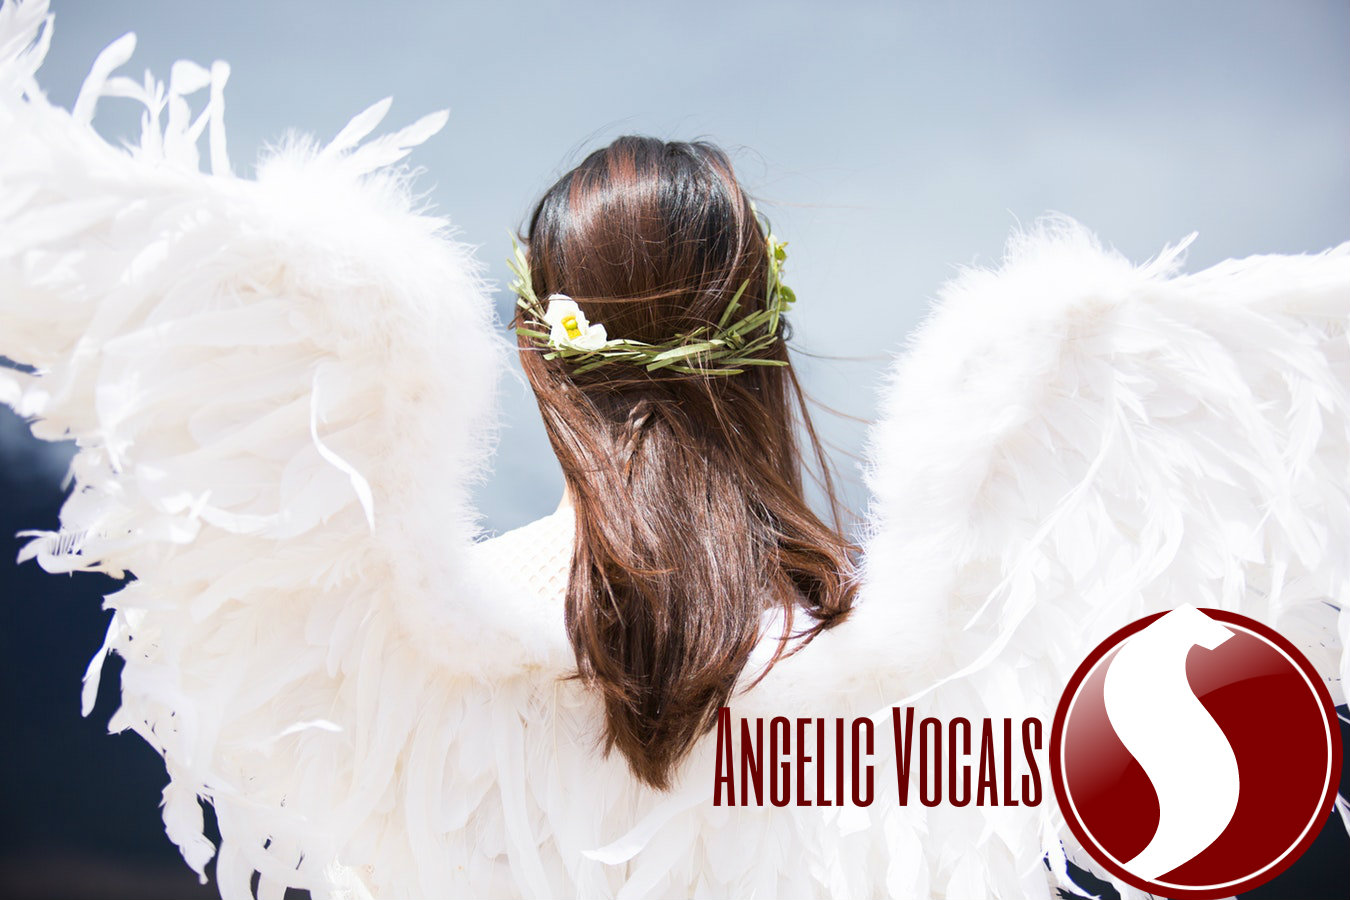 Angelic Vocals - 50 Samples And Loops